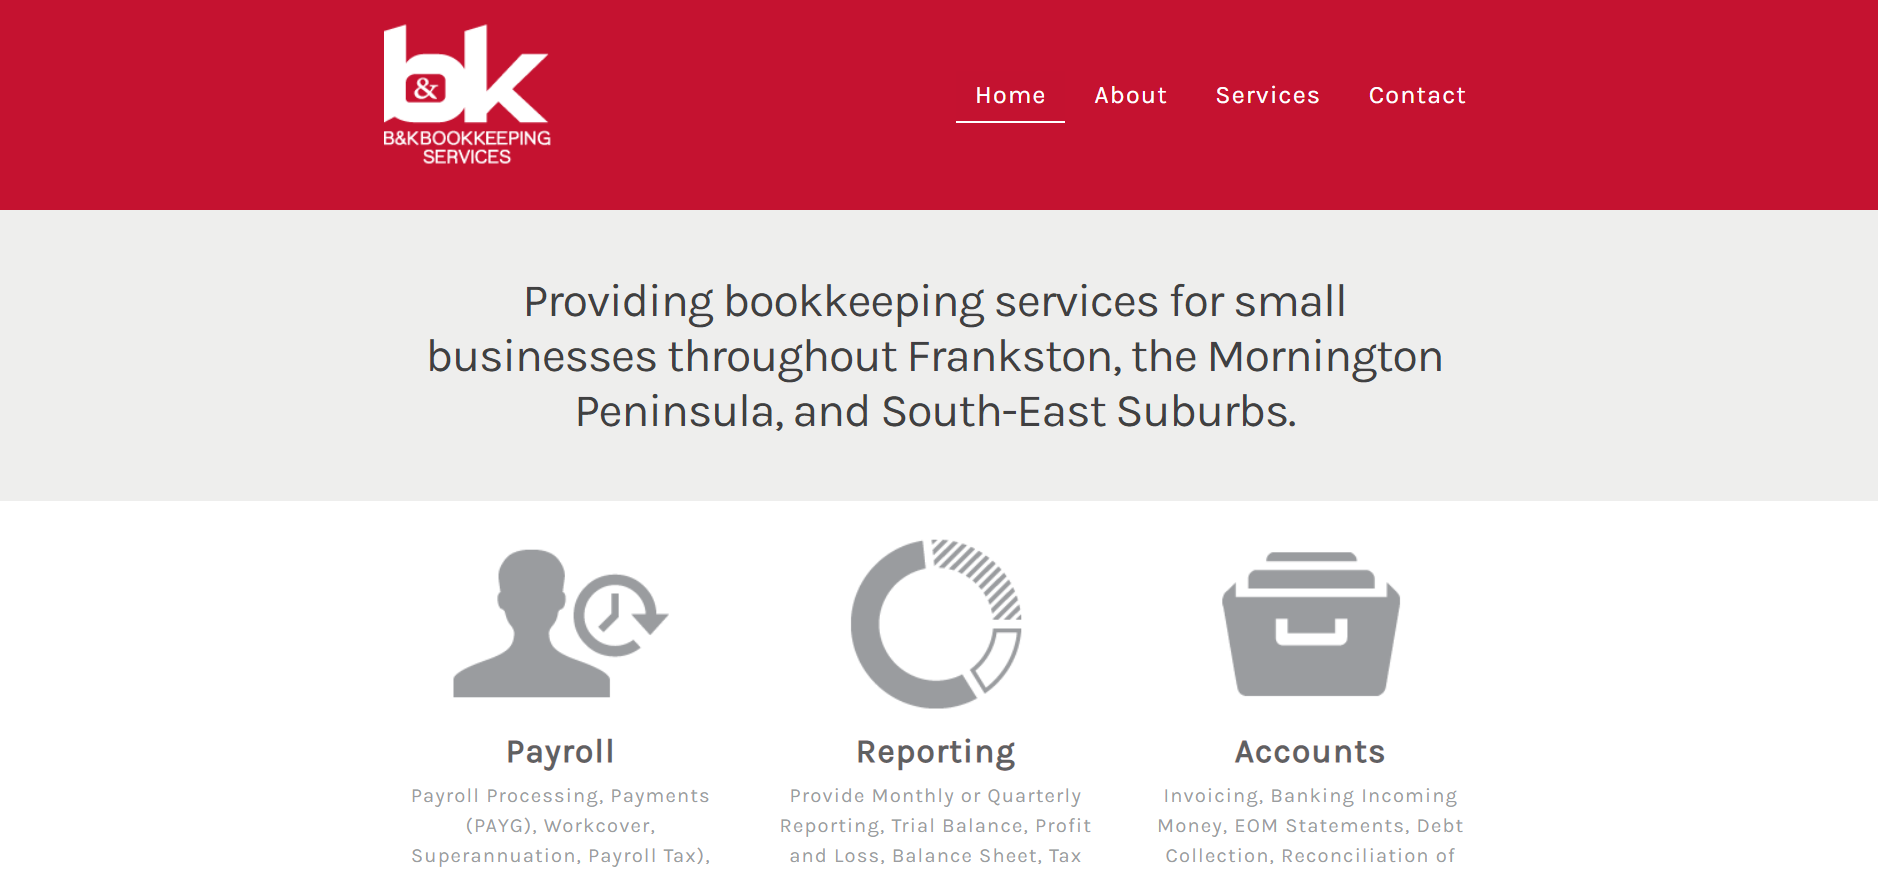 B & K Bookkeeping Services